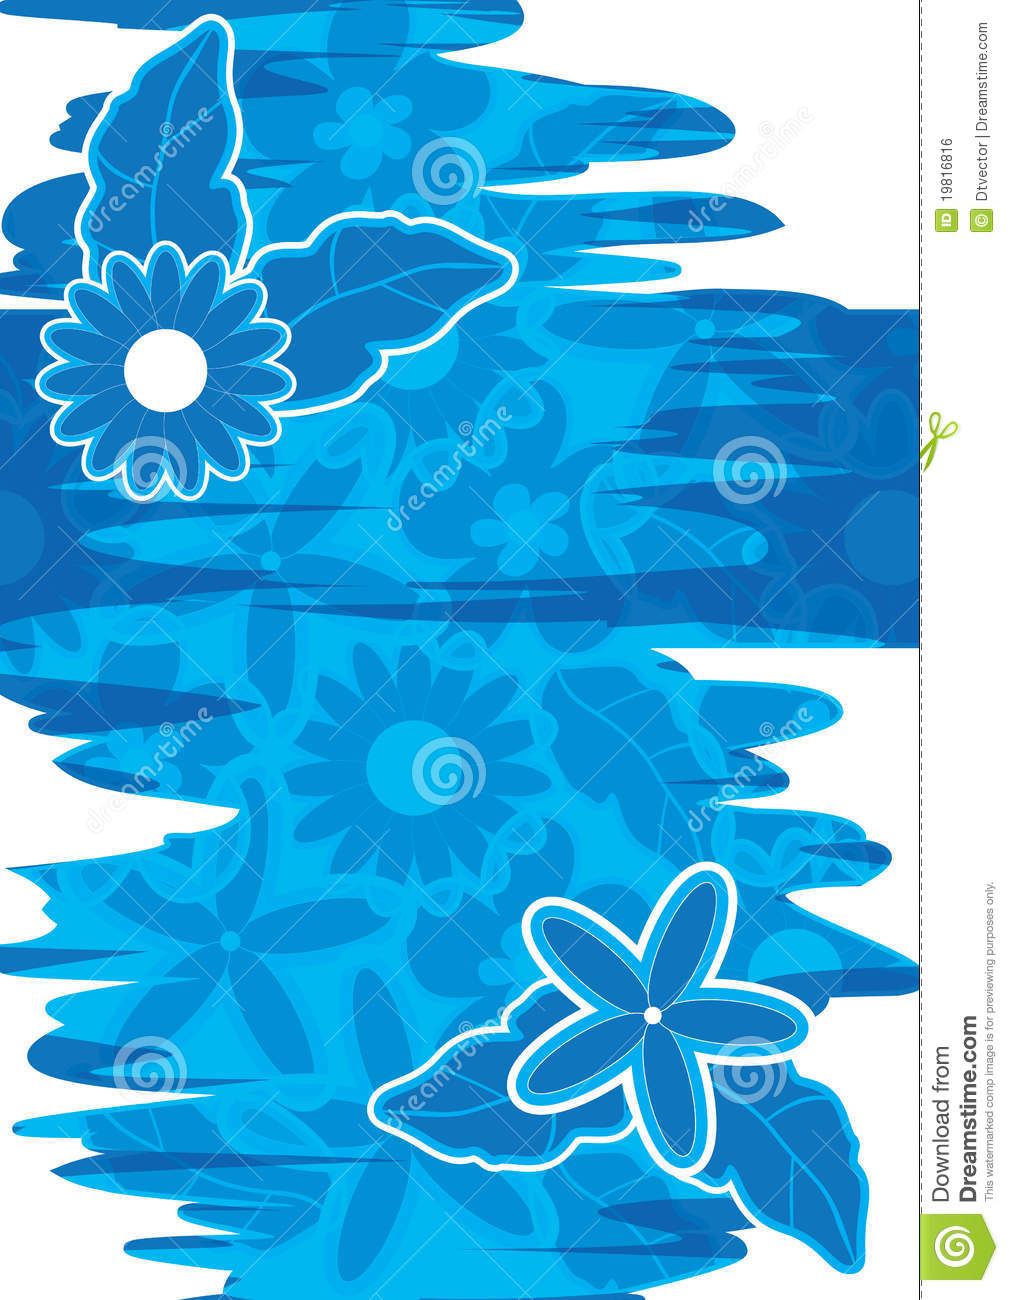 Abstract blue water flowers decoeps stock vector illustration of download abstract blue water flowers decoeps stock vector illustration of decoration event 19816816 izmirmasajfo